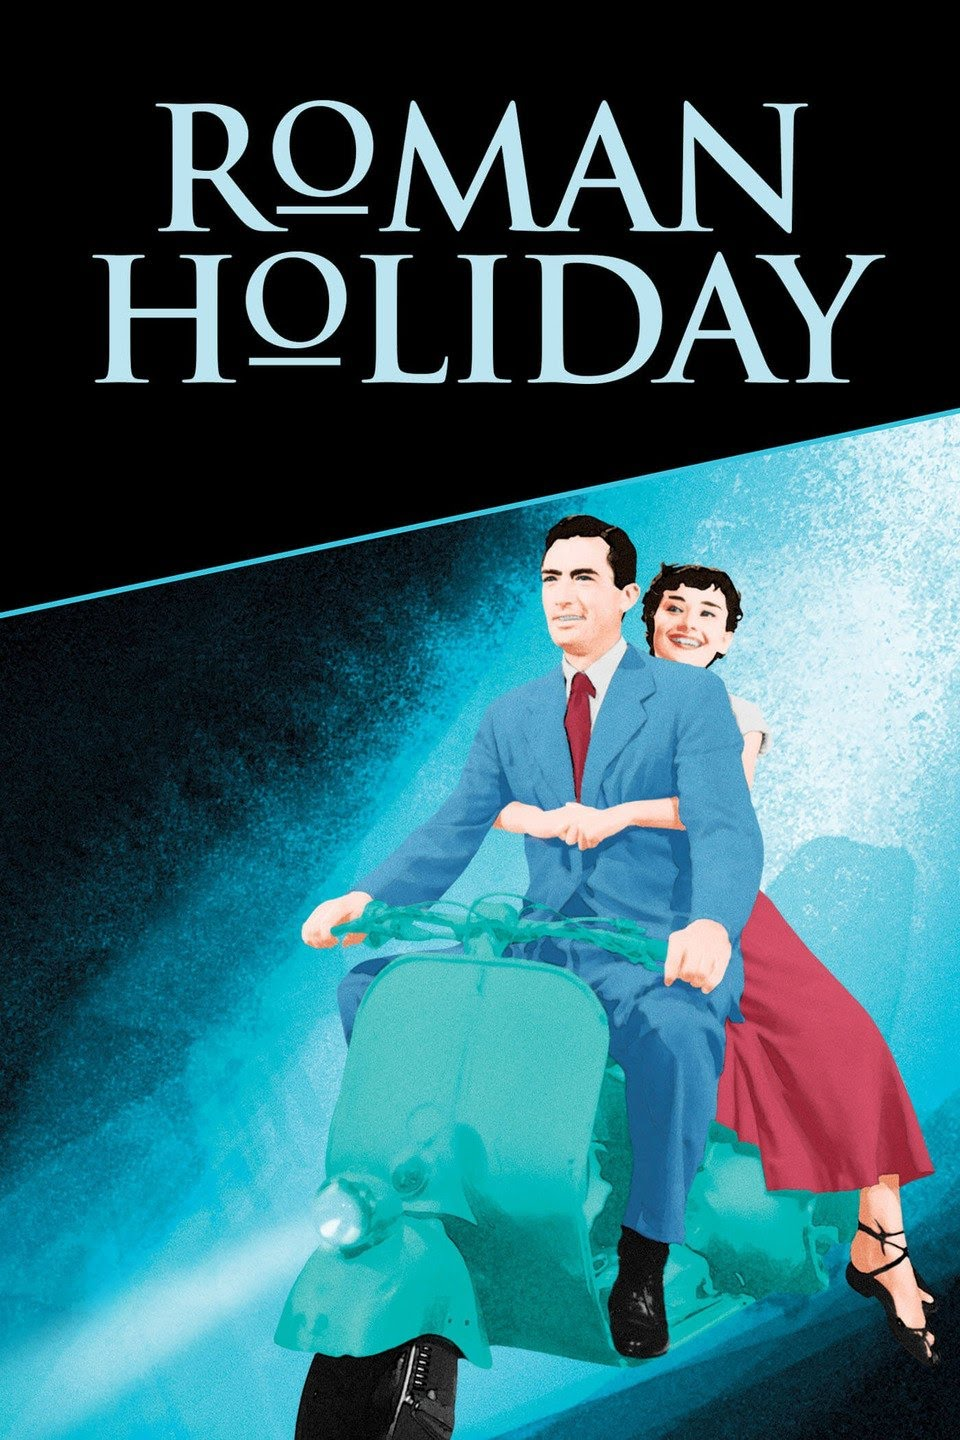 Image result for roman holiday movie